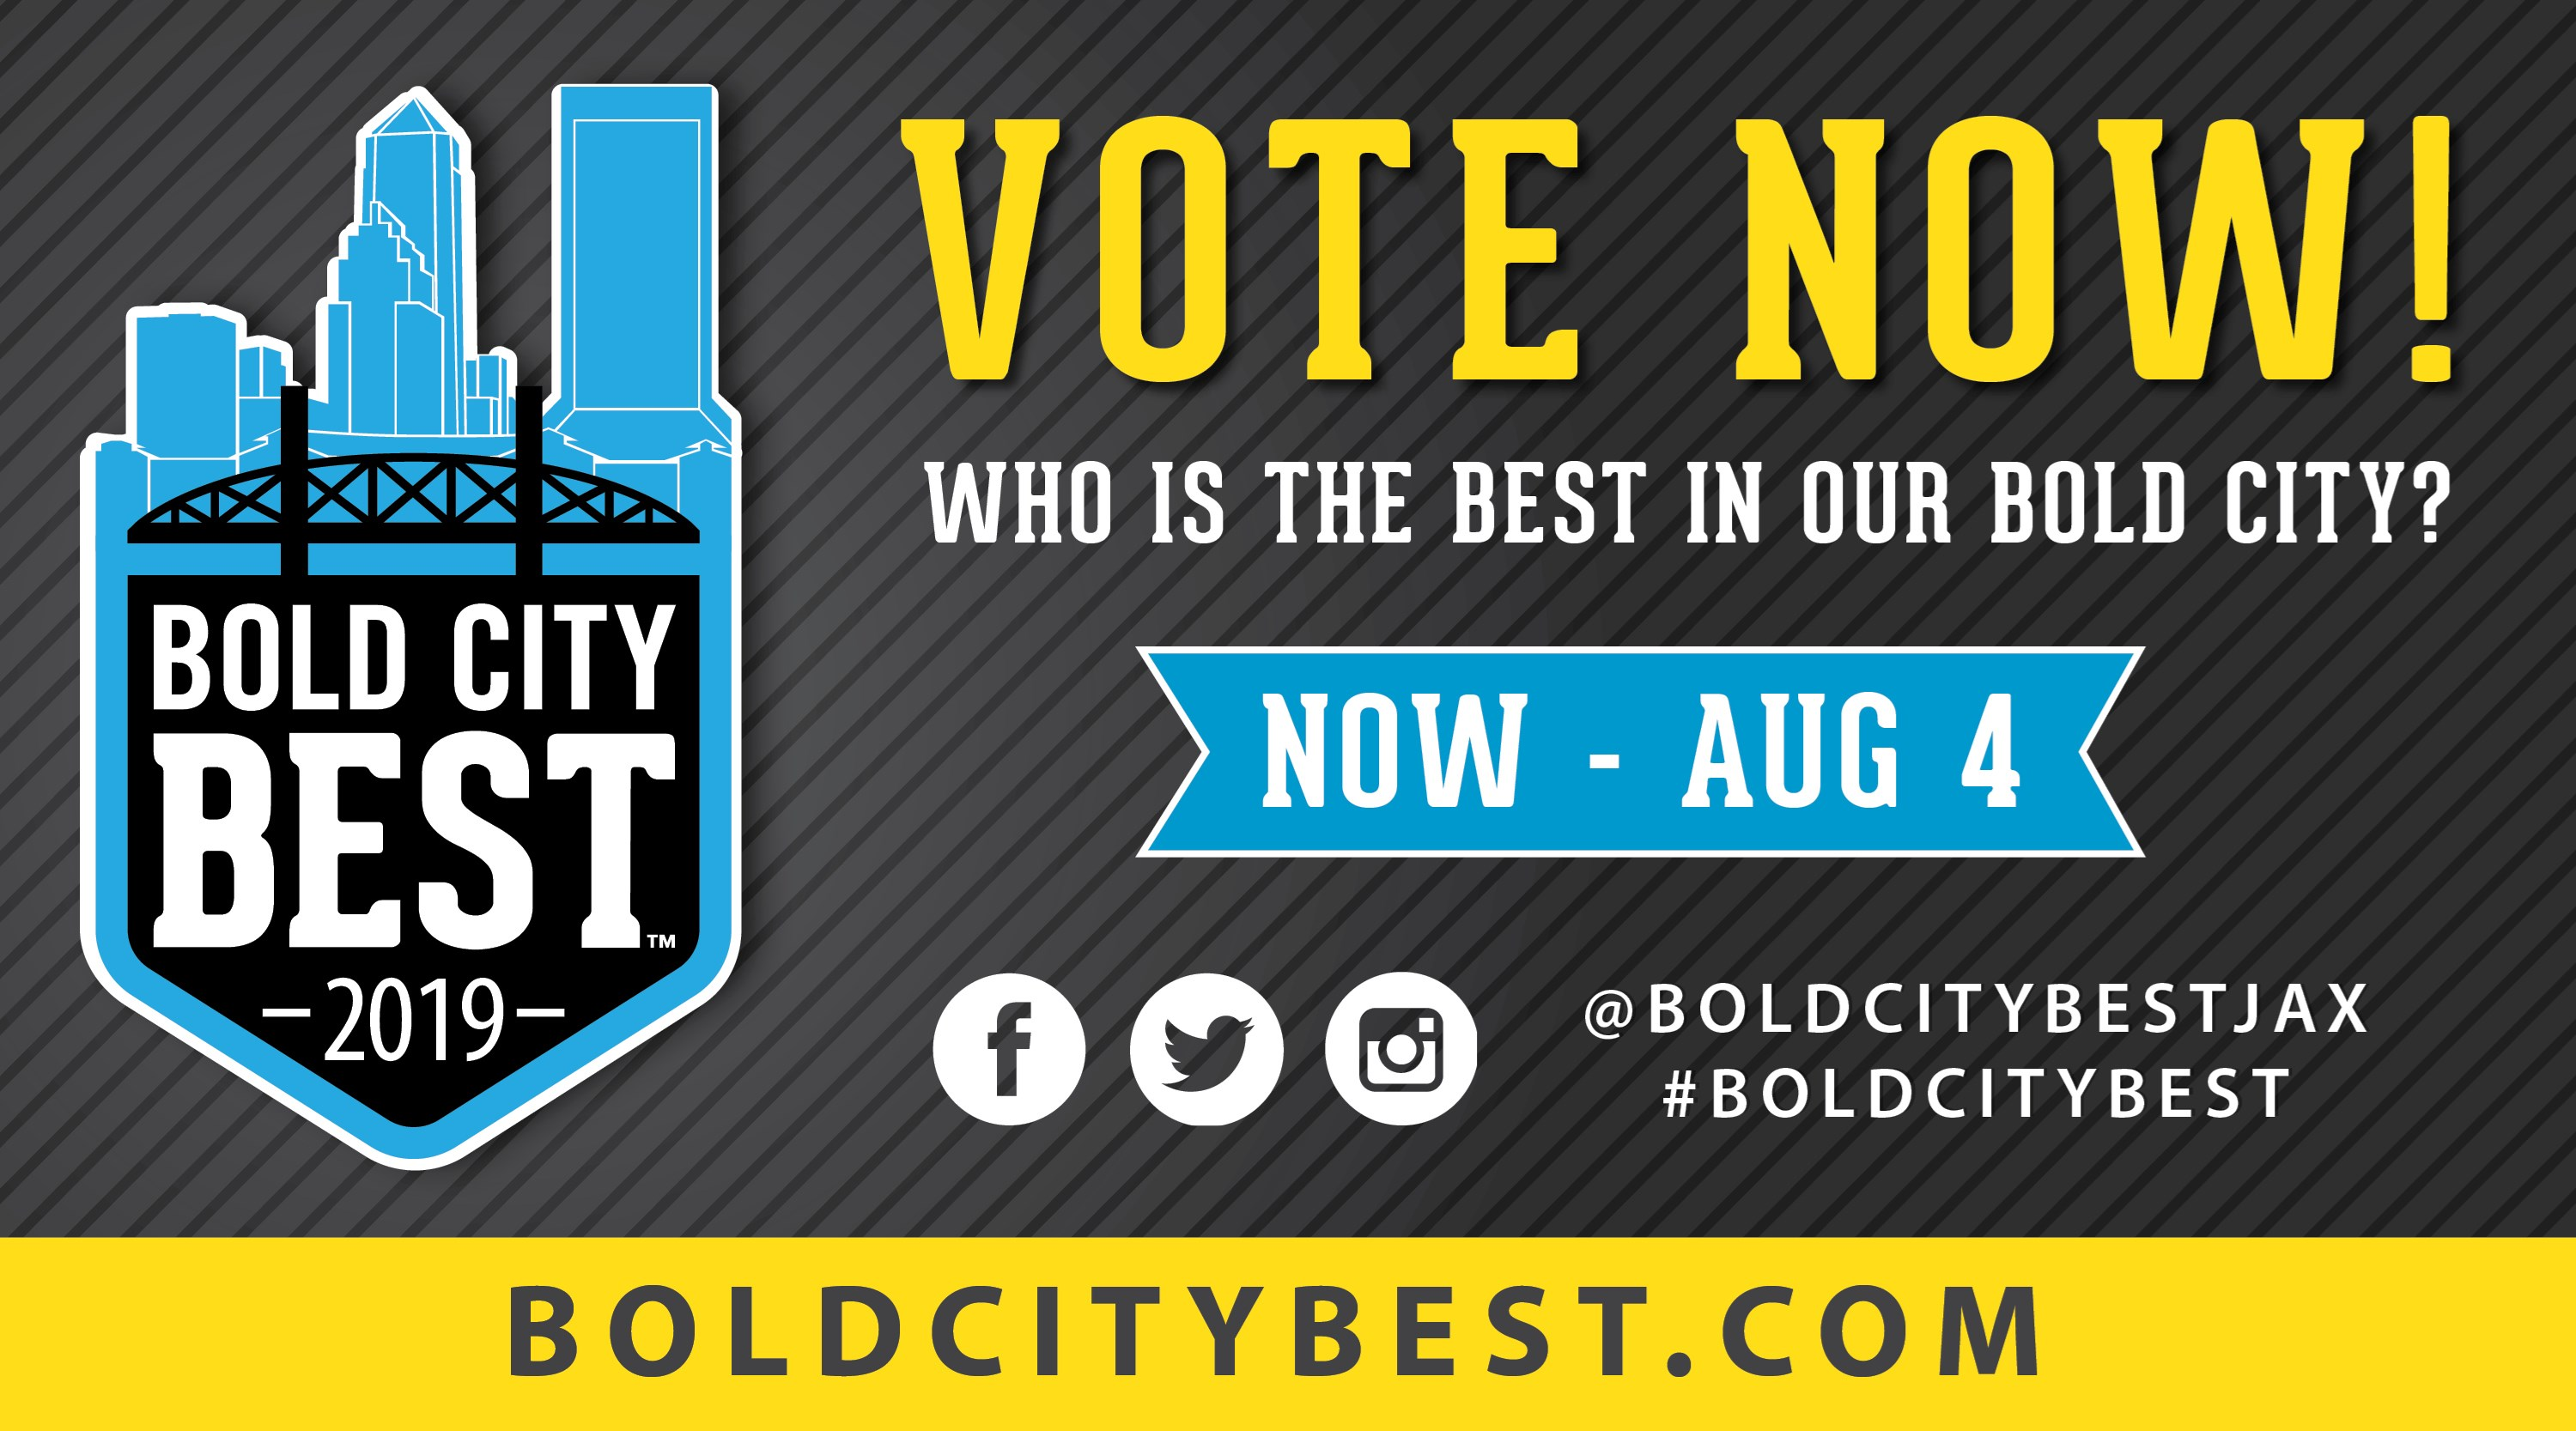 2019 Bold City Best - Contests and Promotions - The Florida Times